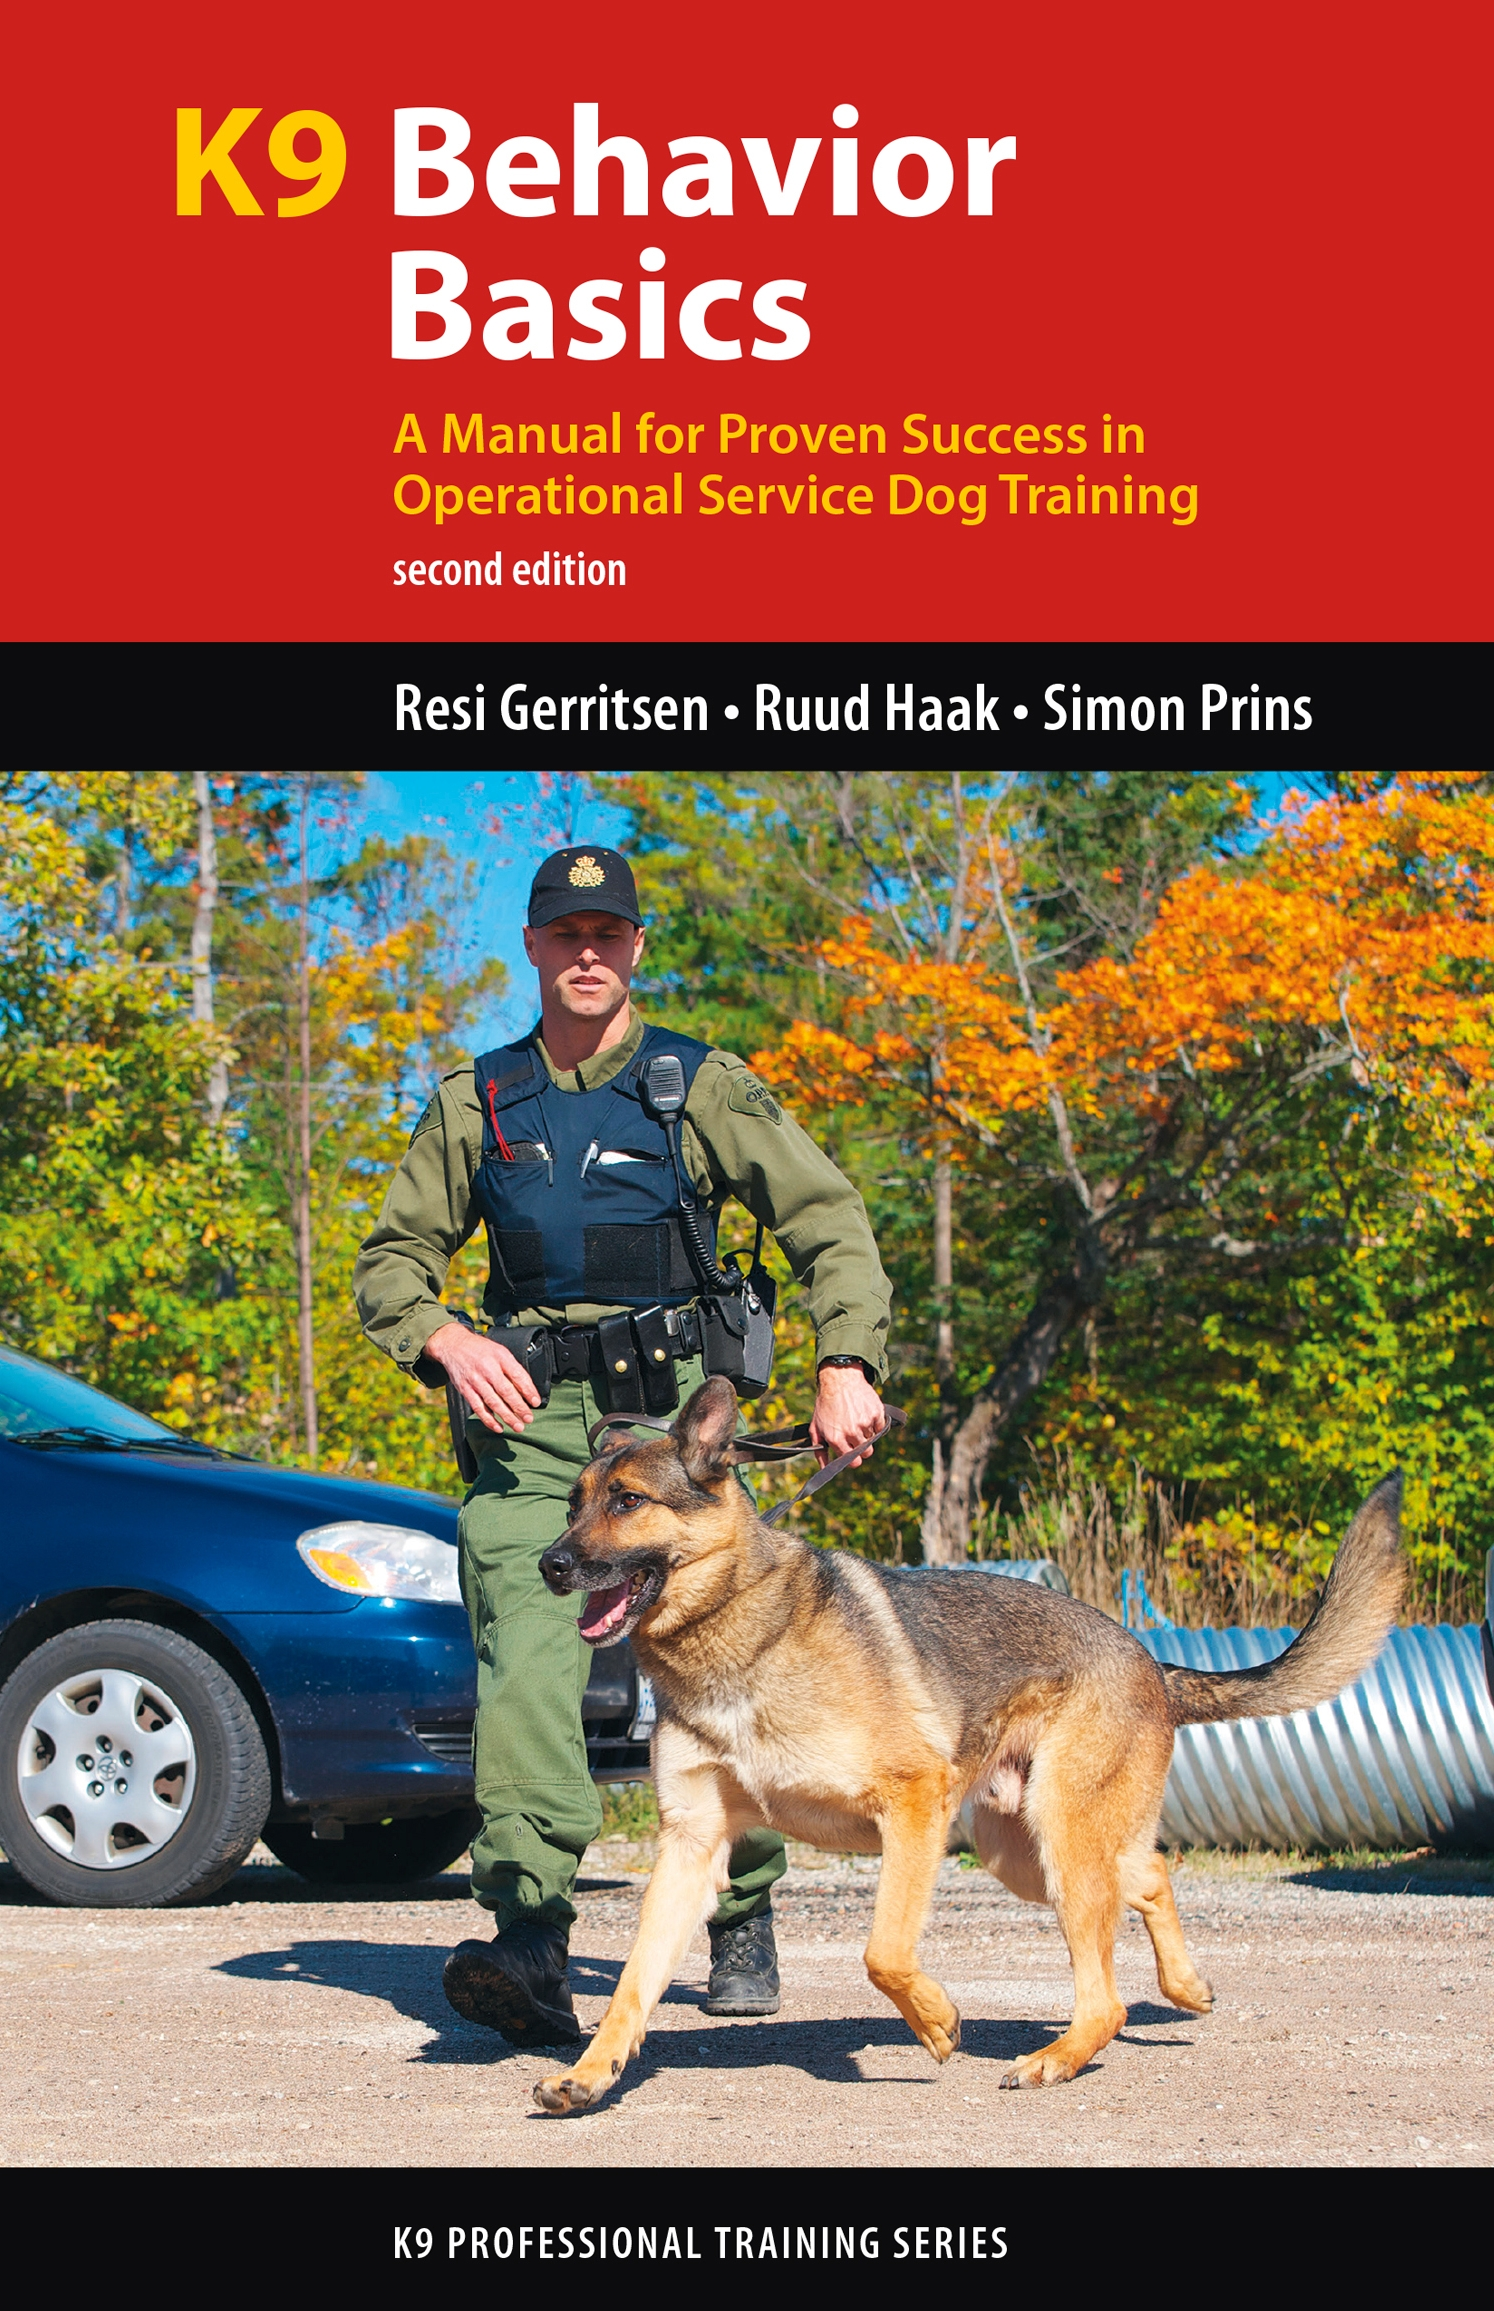 K9 Behavior Basics